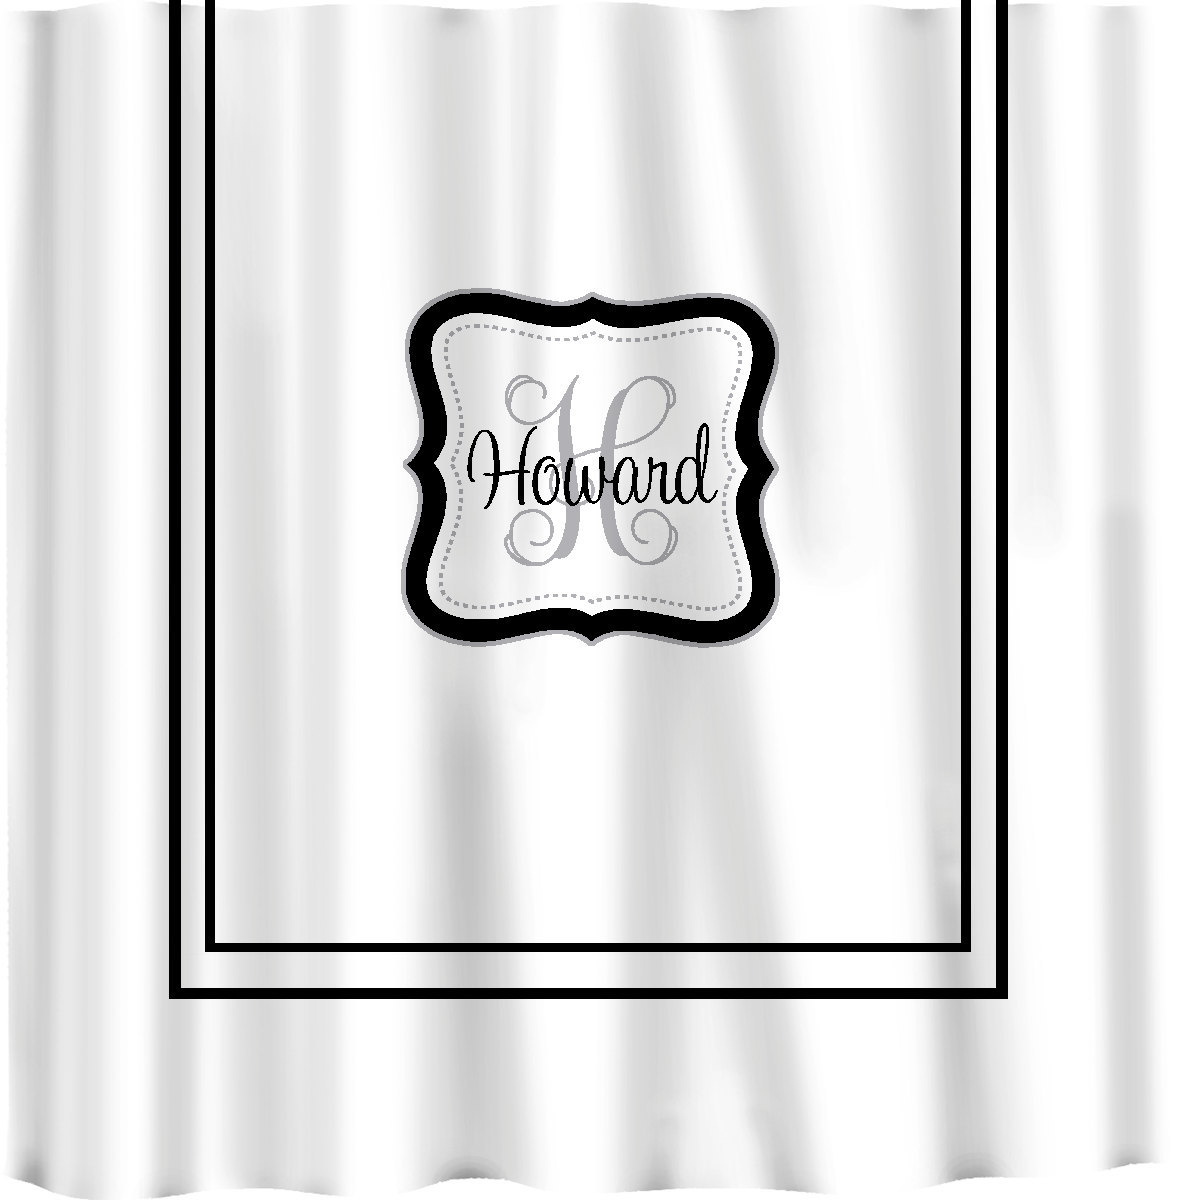 Custom Shower Curtain -Simplicity with monogram in your colors - color or white